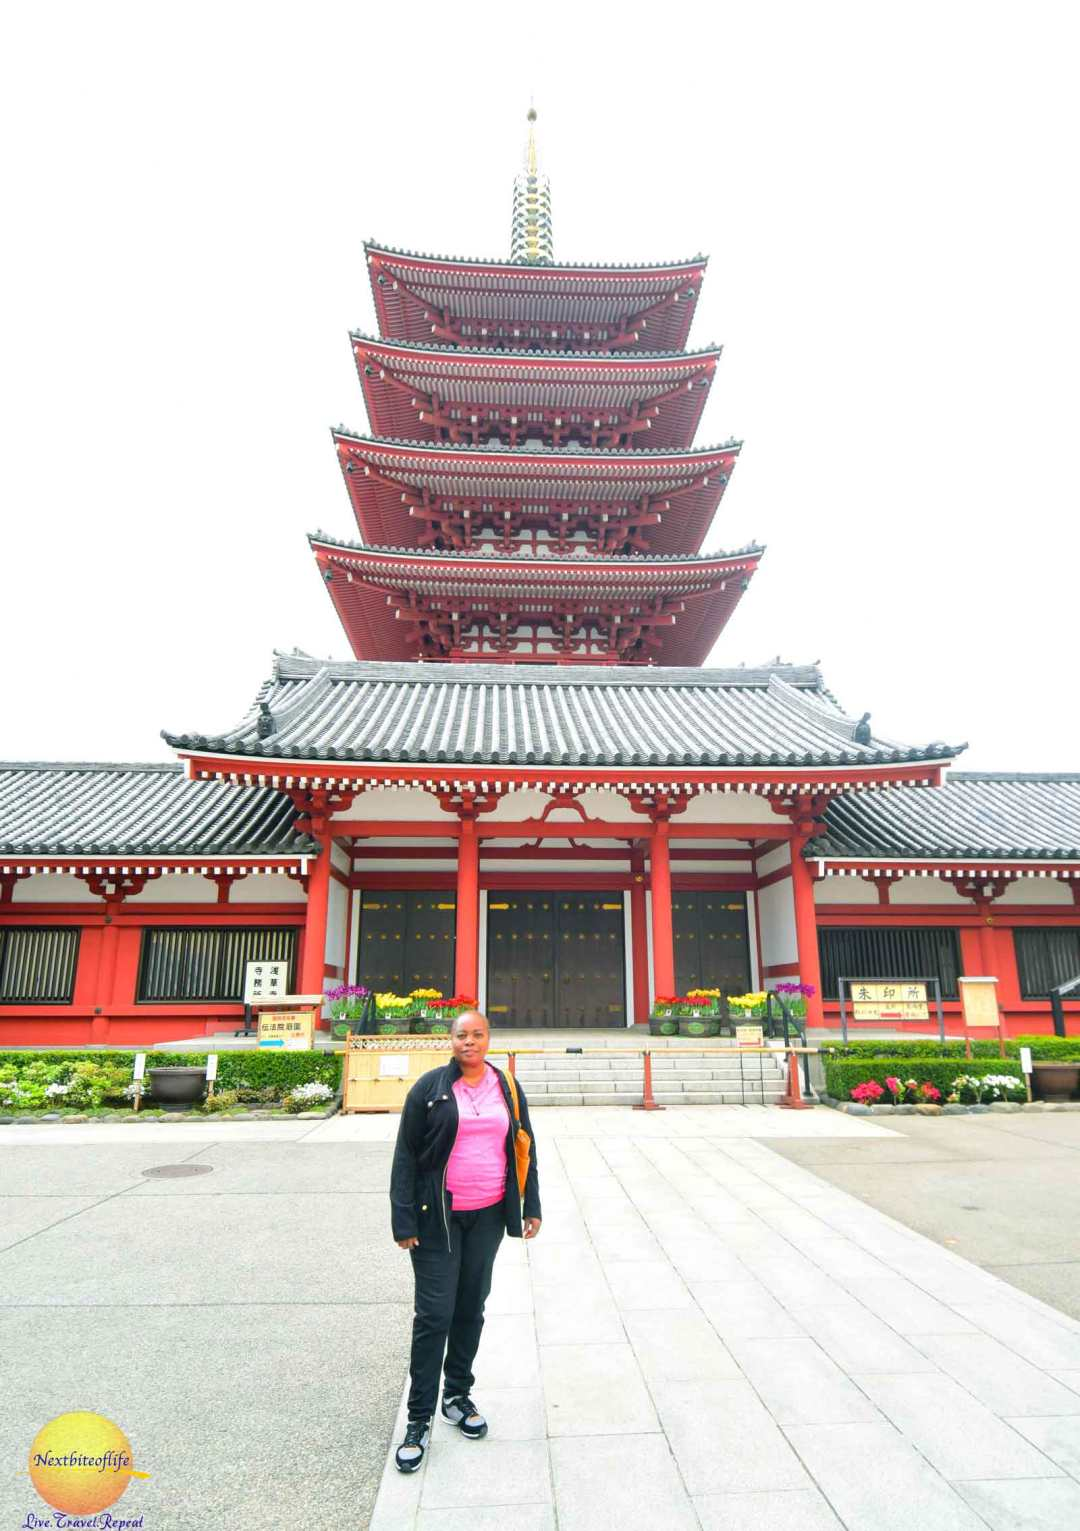 The pagoda behind me.